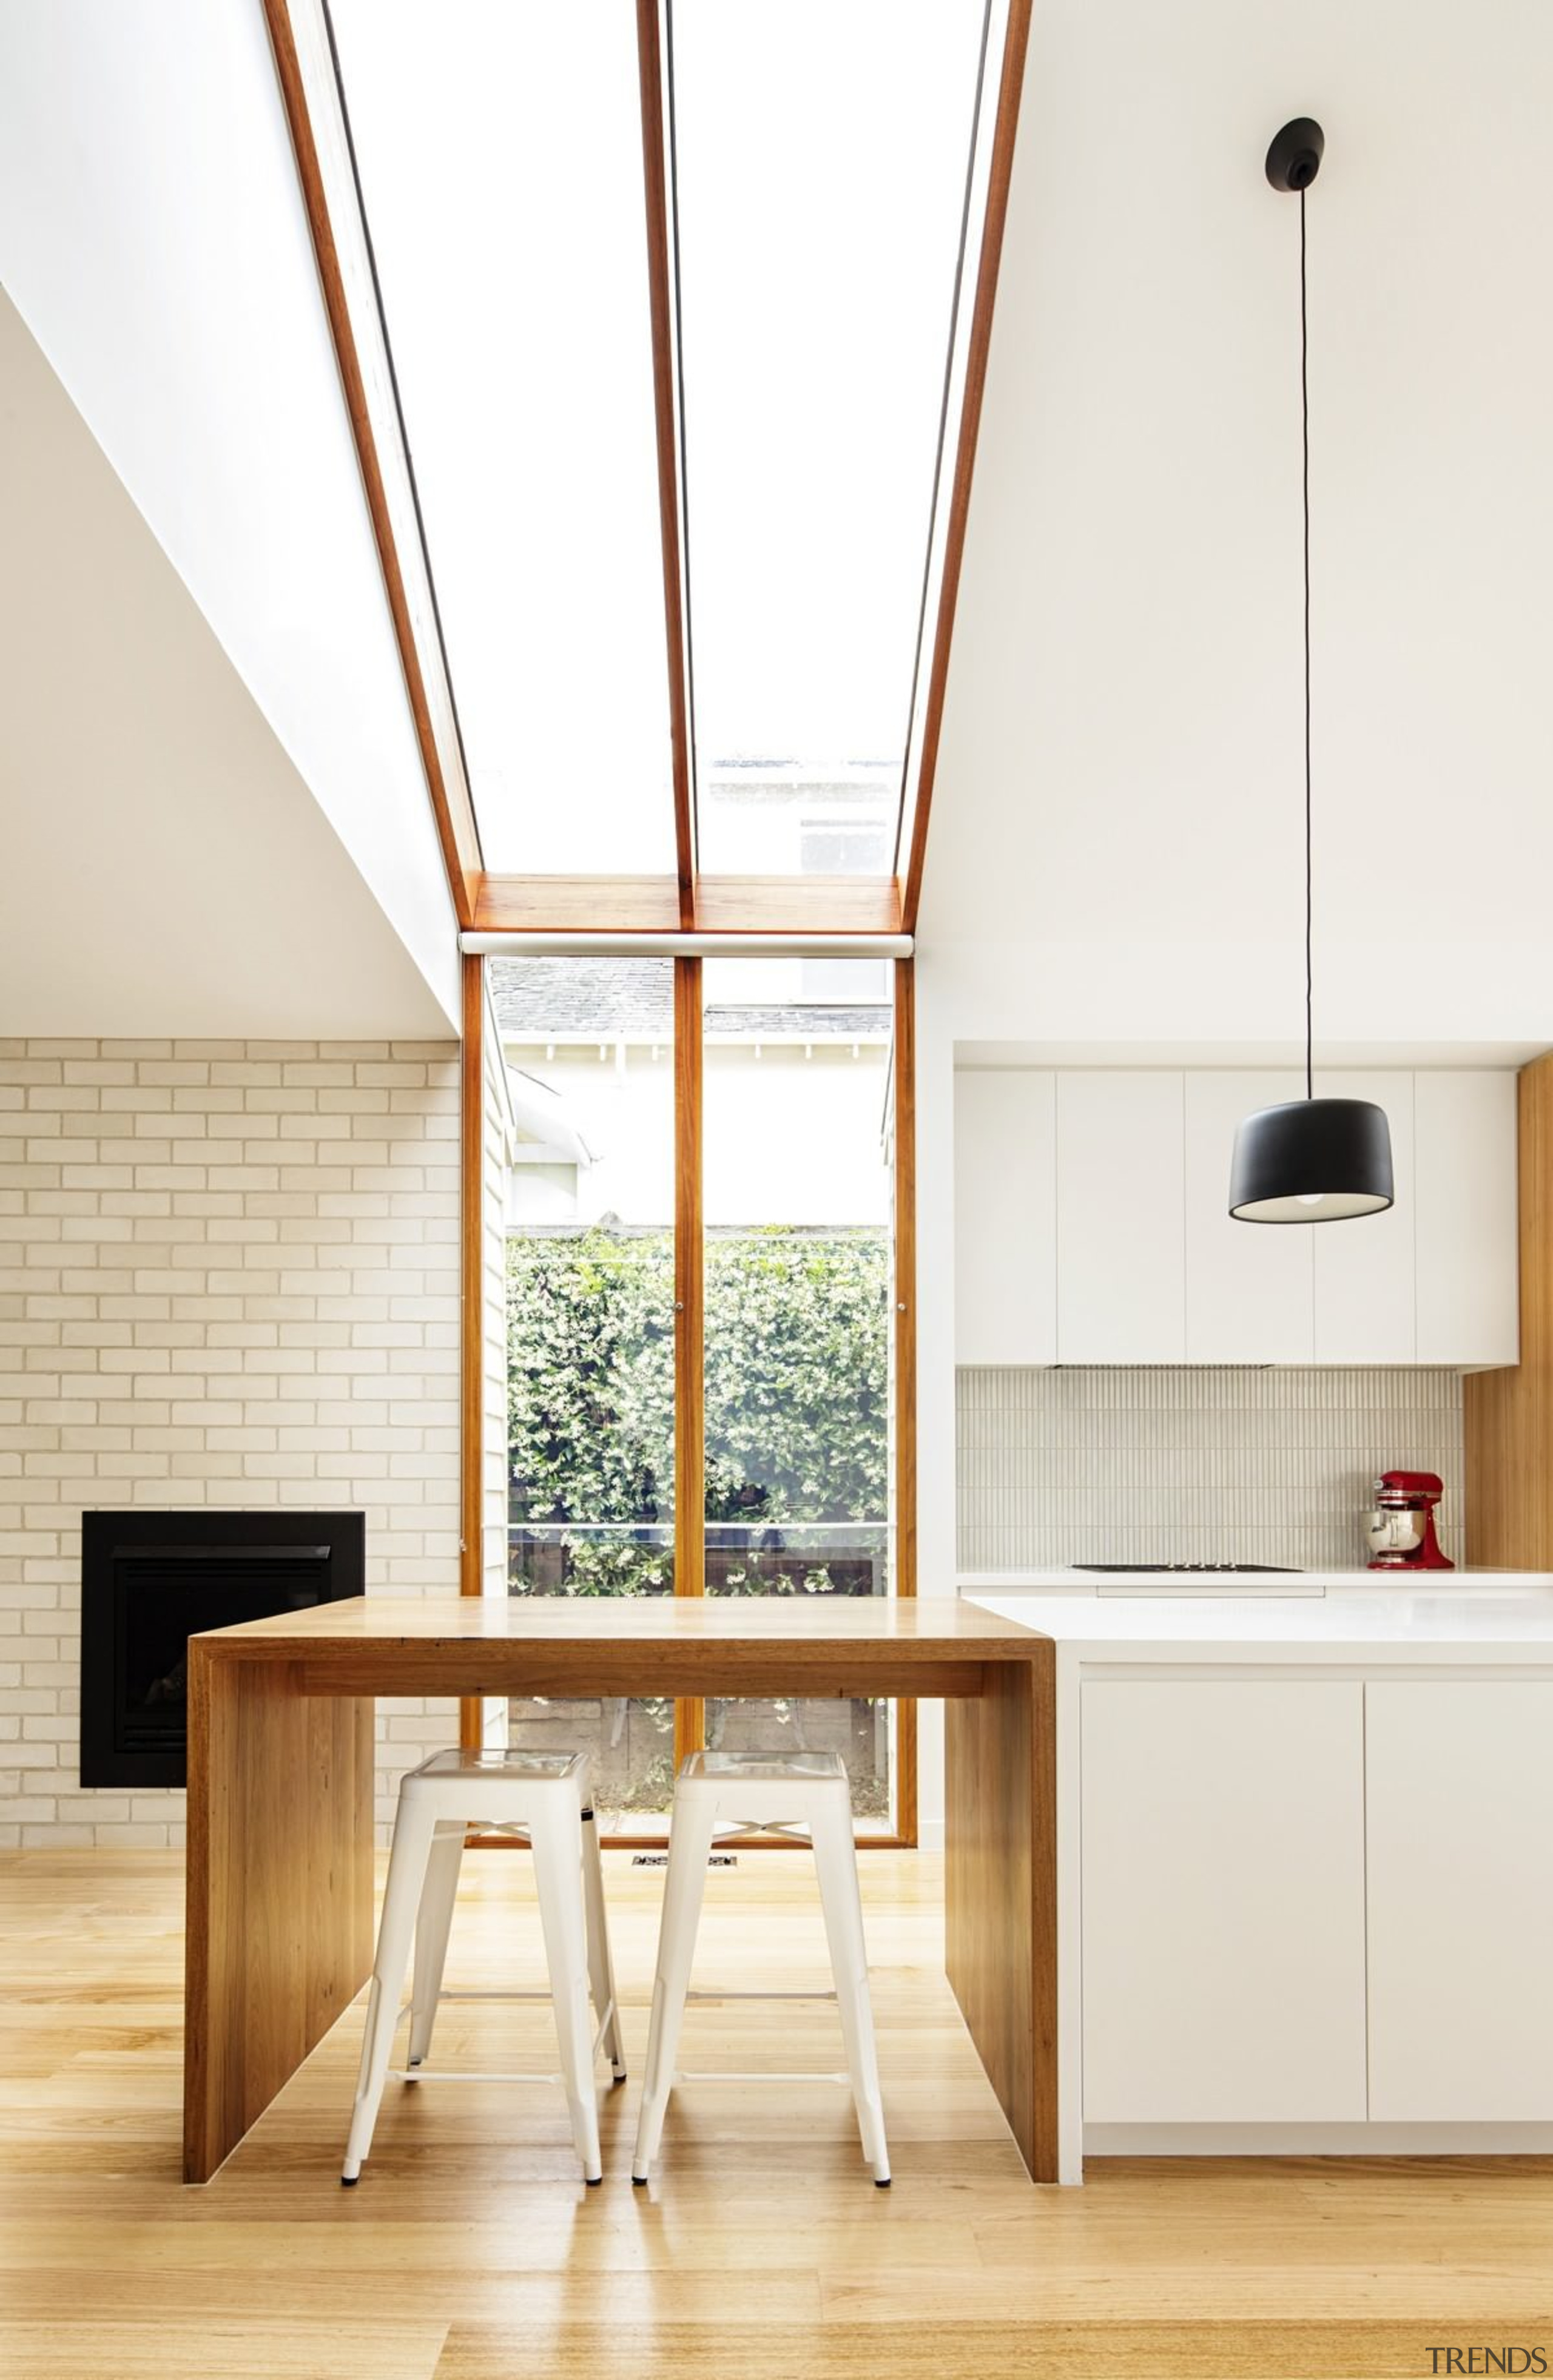 These windows have been designed for maximum light architecture, ceiling, daylighting, furniture, house, interior design, kitchen, product design, table, wood, white